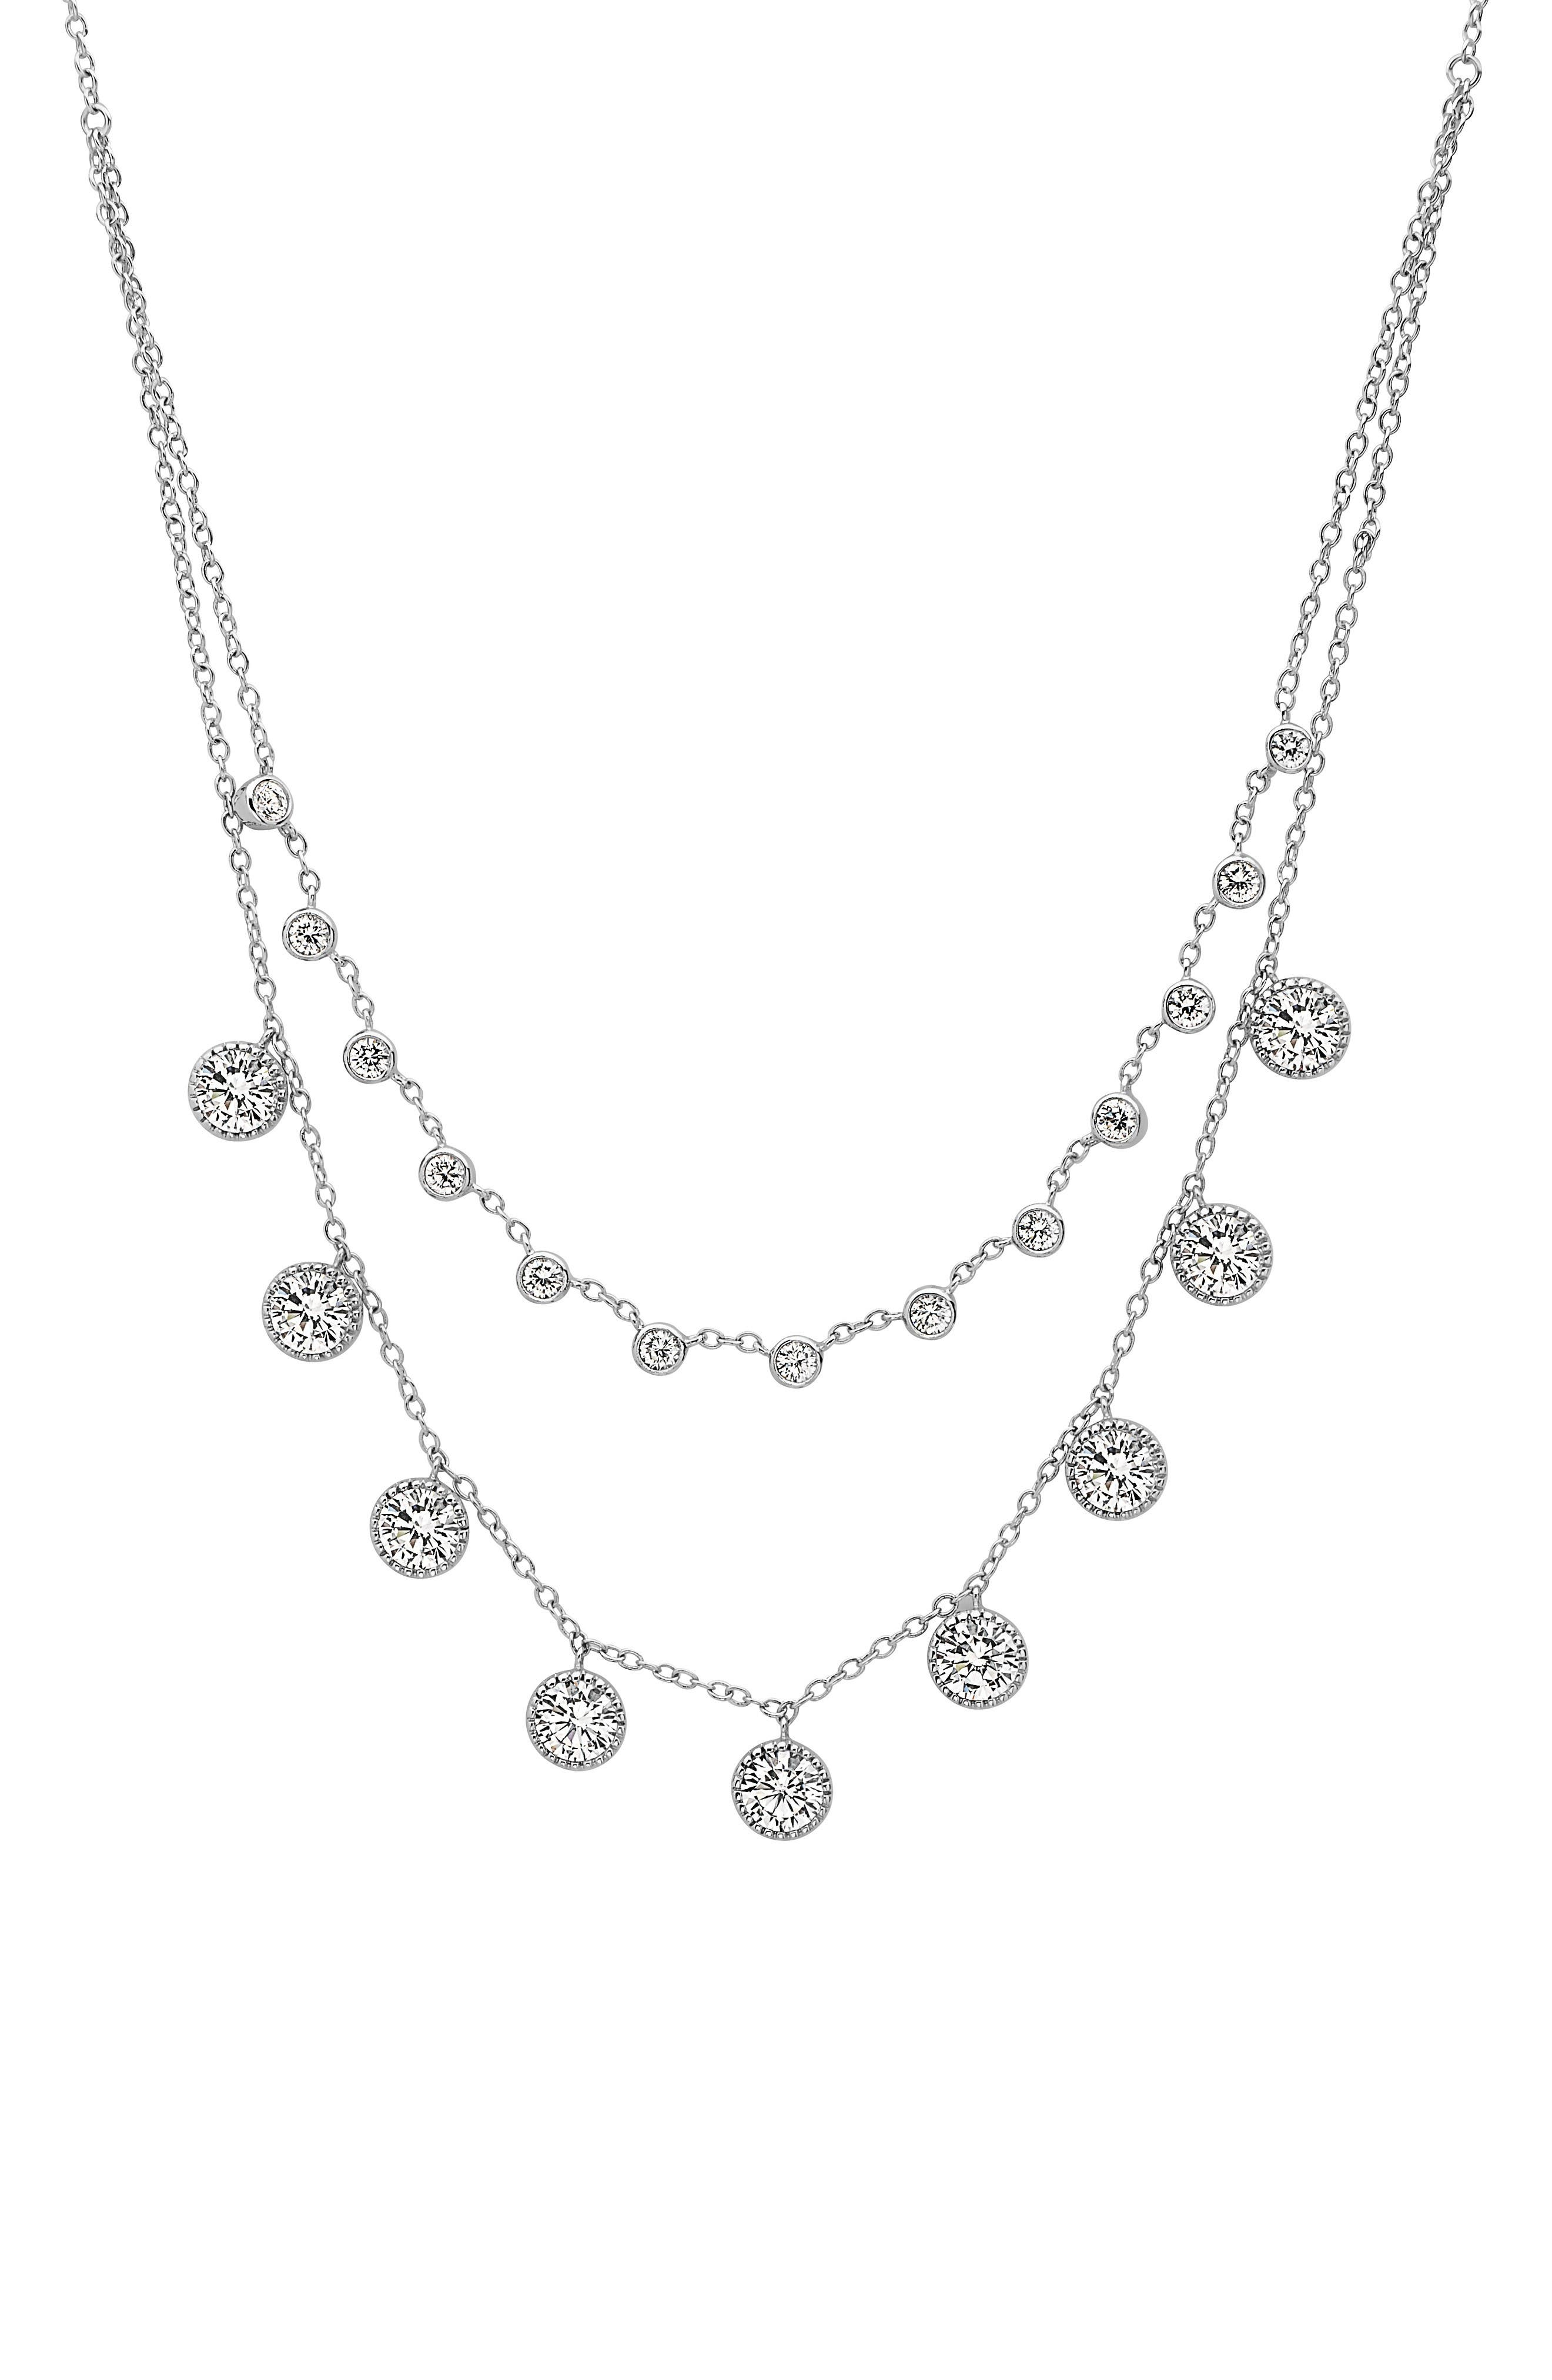 Frontal Necklace,                             Main thumbnail 1, color,                             Silver